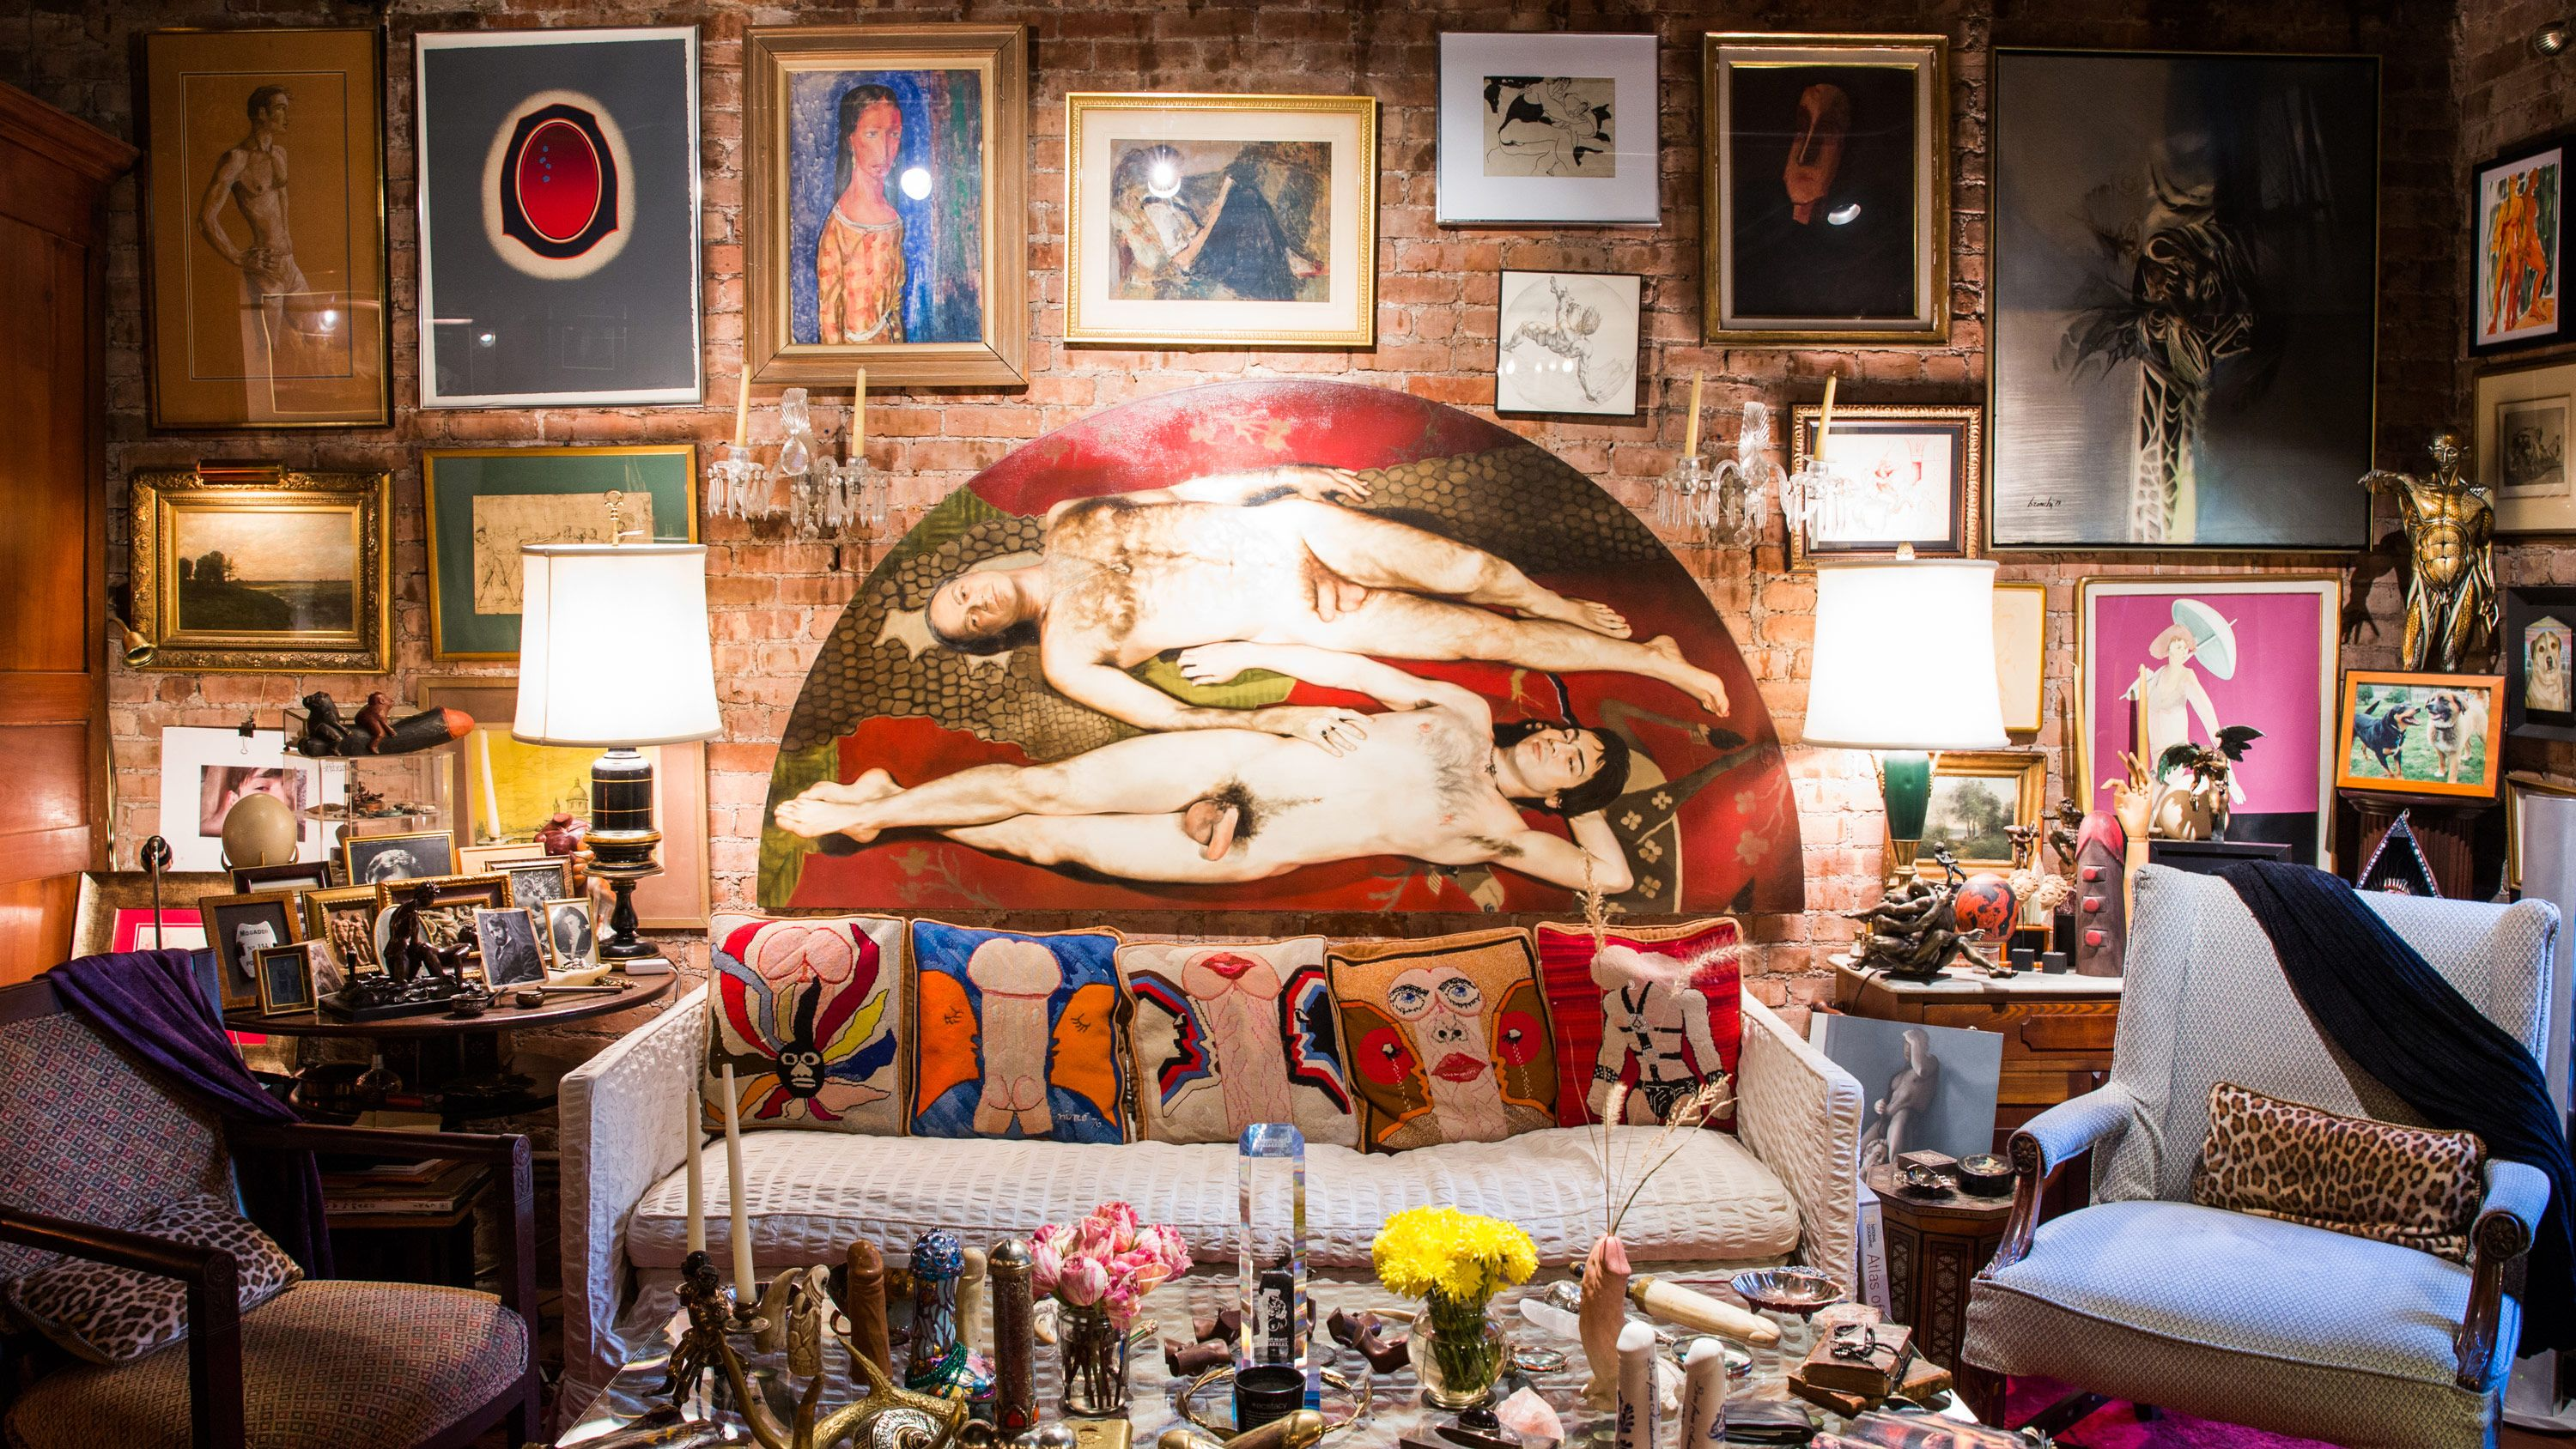 Inside an NYC Apartment with a Most Unusual Art Collection